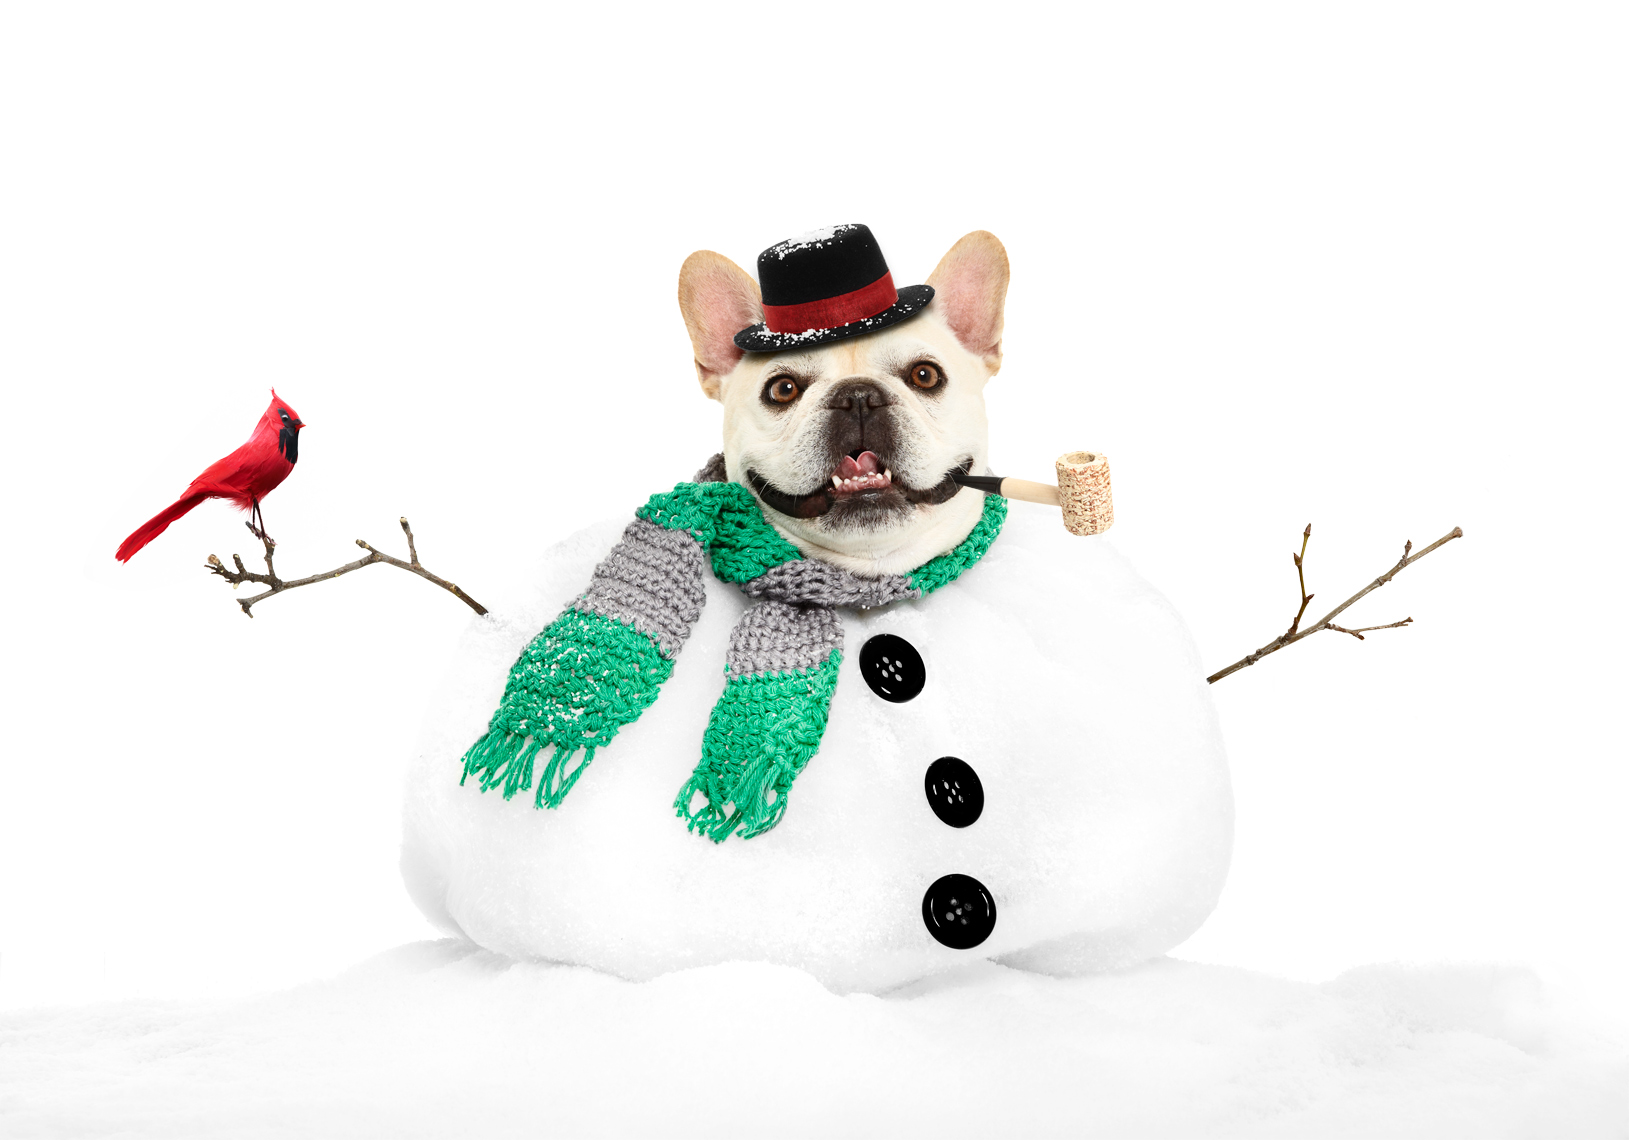 French Bulldog as Snowman